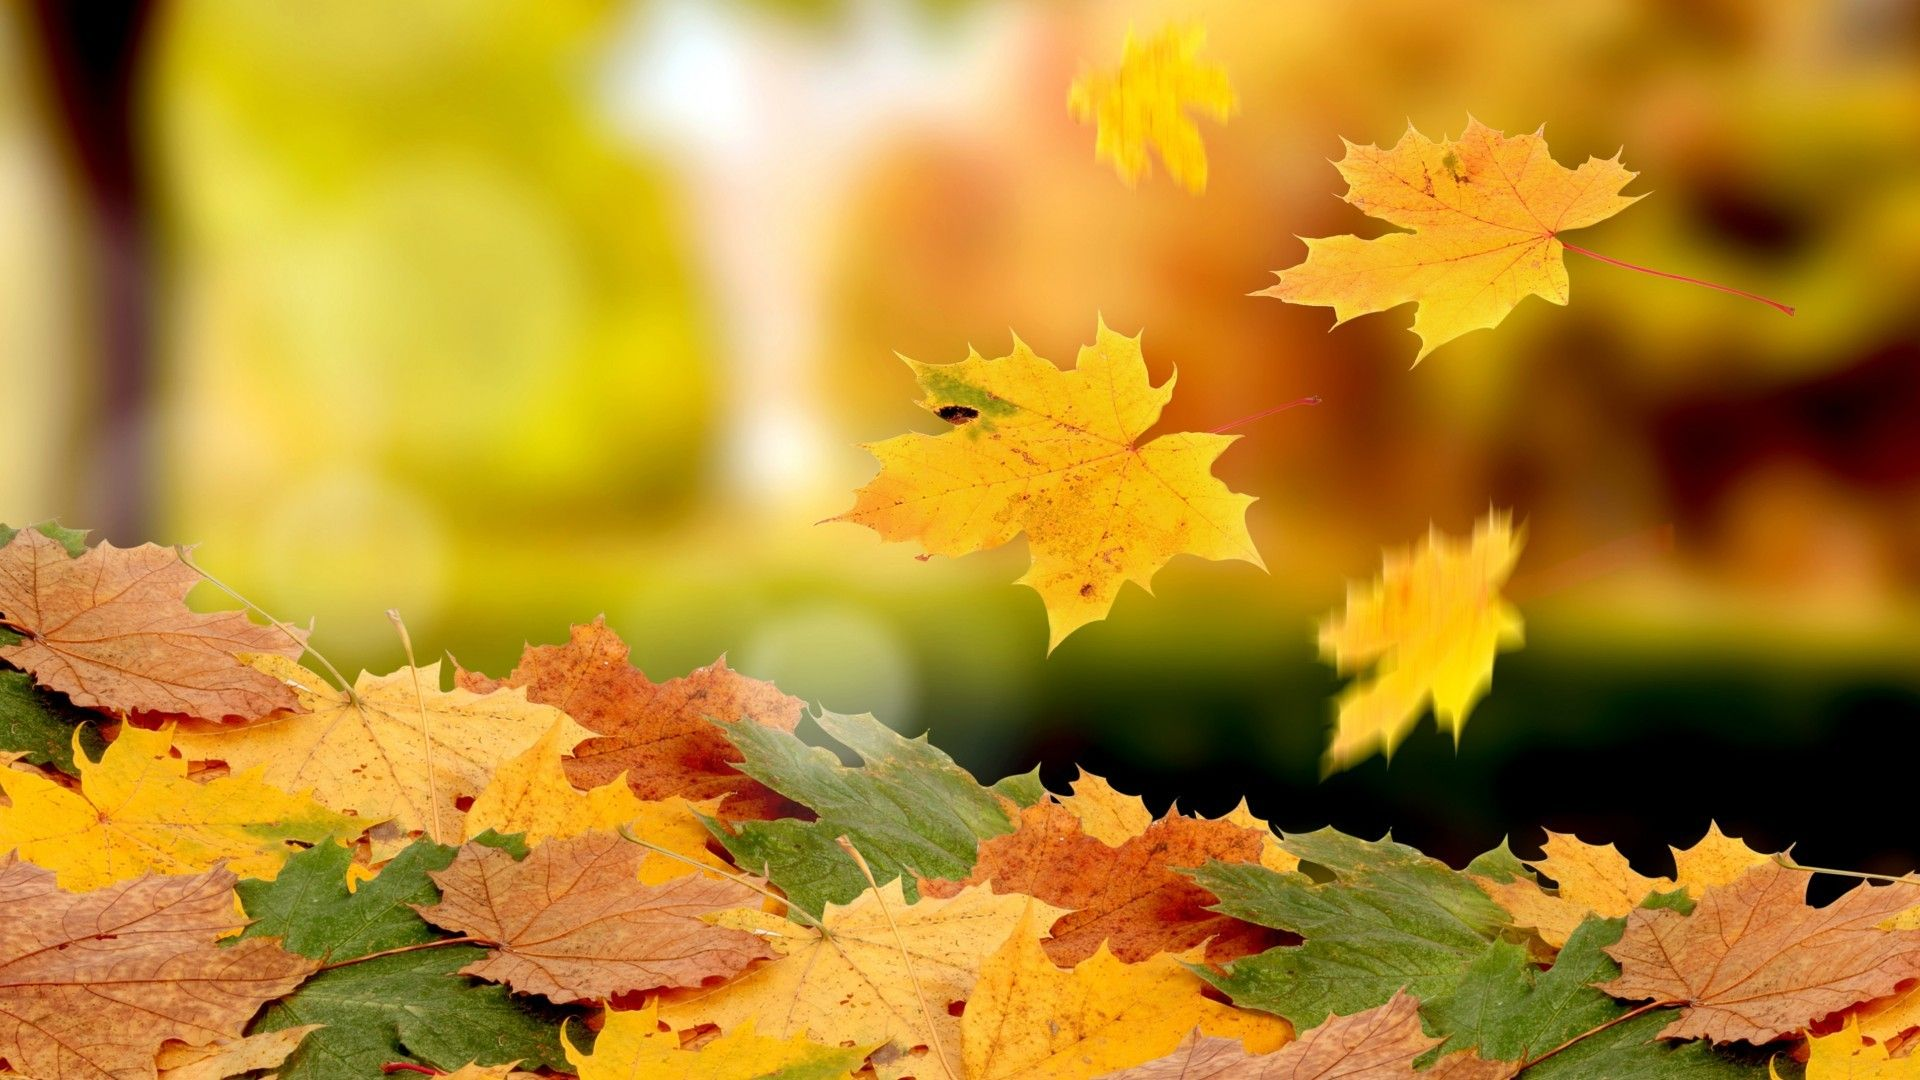 Flying Leaves Autumn Carpet Beautiful Flowers And Plants Wallpapers Hd Wallpaper Download For Ip Autumn Wallpaper Hd Fall Wallpaper Autumn Leaves Wallpaper